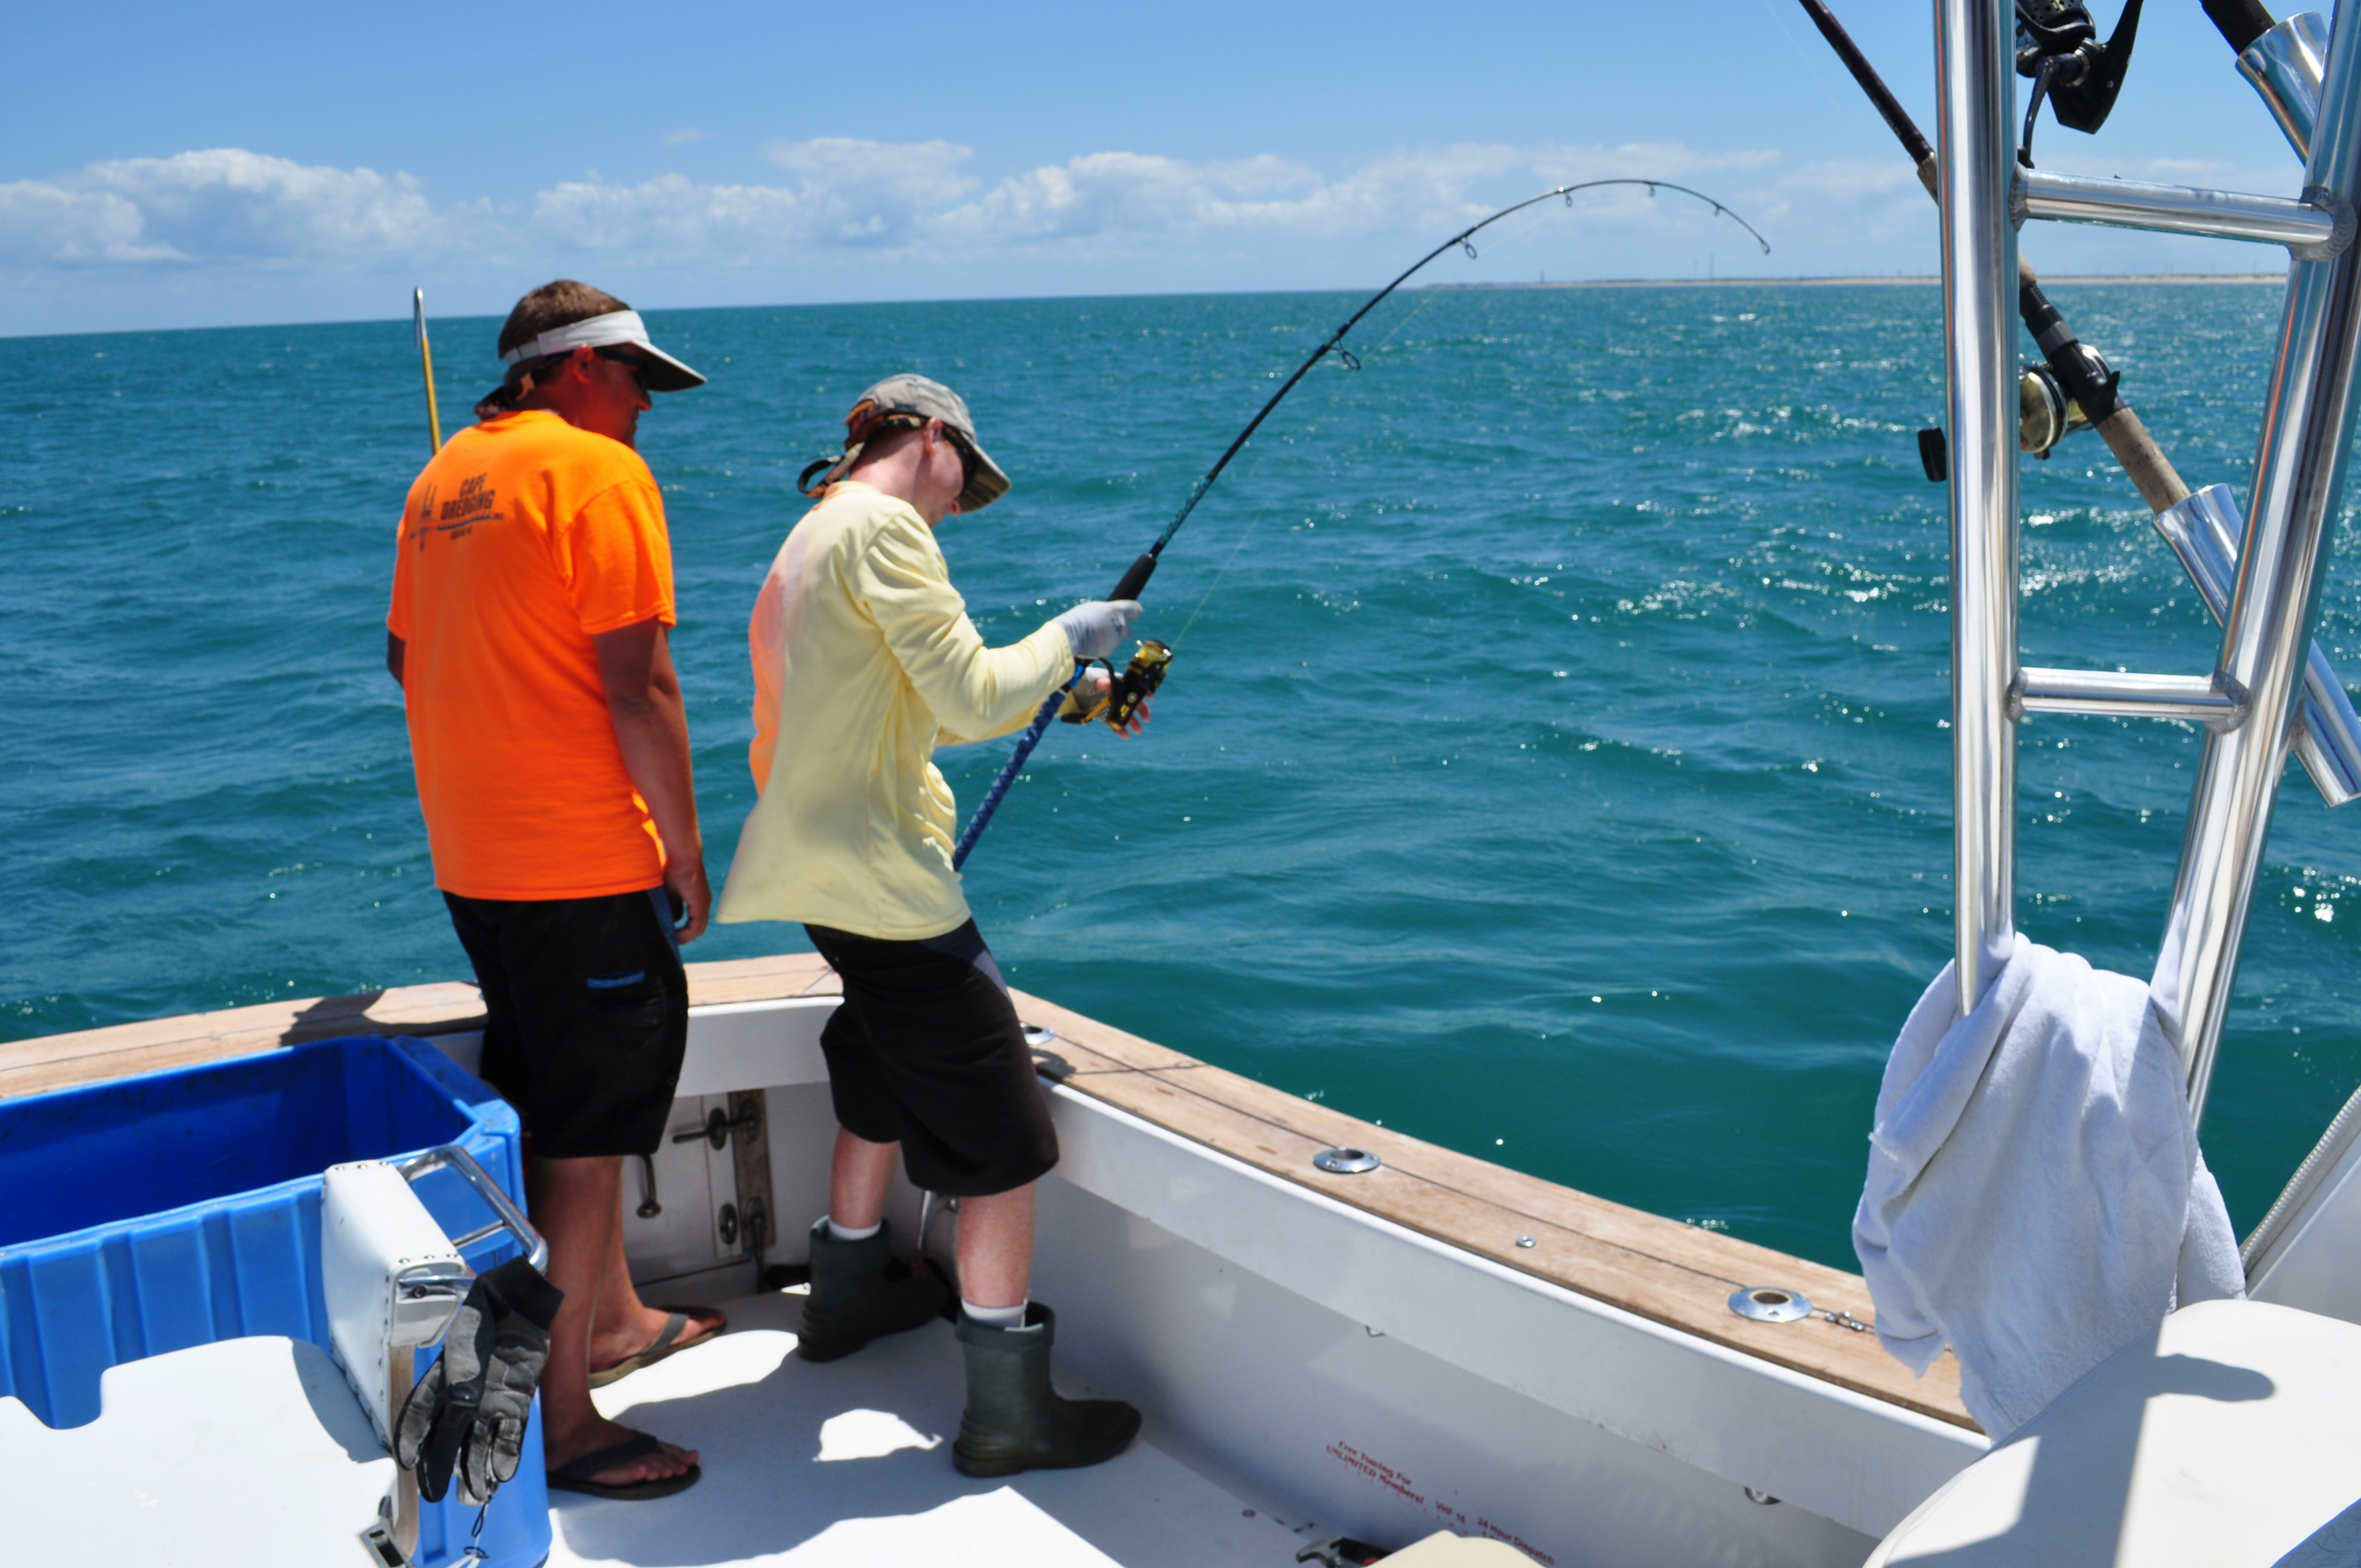 Outer banks charters hatteras update for Fishing charters outer banks